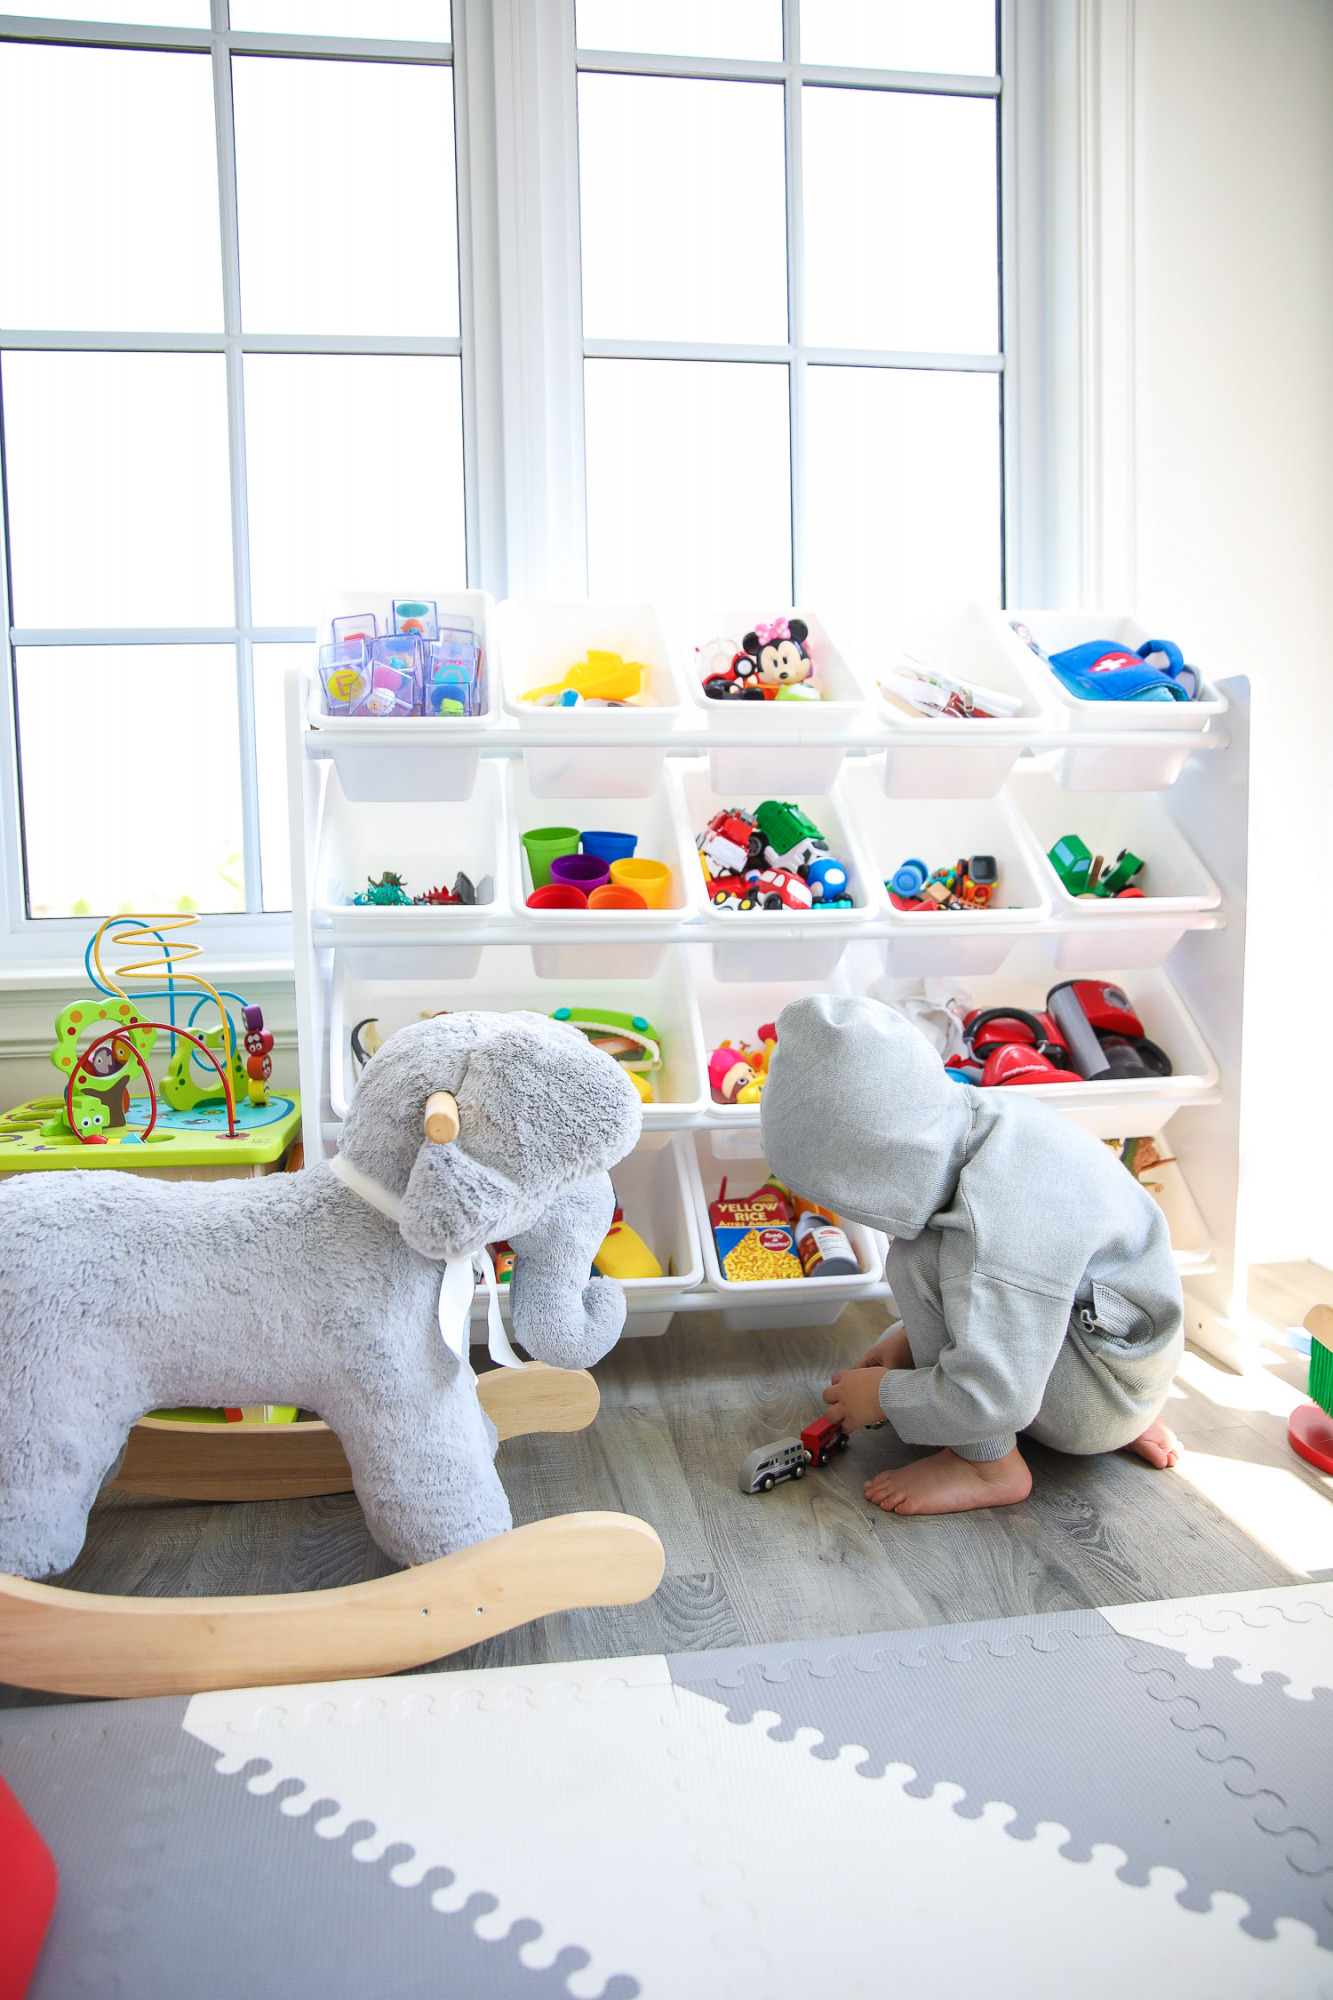 walmart kids home organization must haves, playroom organization ideas, emily gemma, the sweetest thing blog | Playroom Organization by popular US life and style blog, The Sweetest Thing: image of a playroom set up with a Walmart Humble Crew Super-Sized Toy Organizer with 16 Plastic Bins, foam flooring, basketball hoop, and rocking elephant.